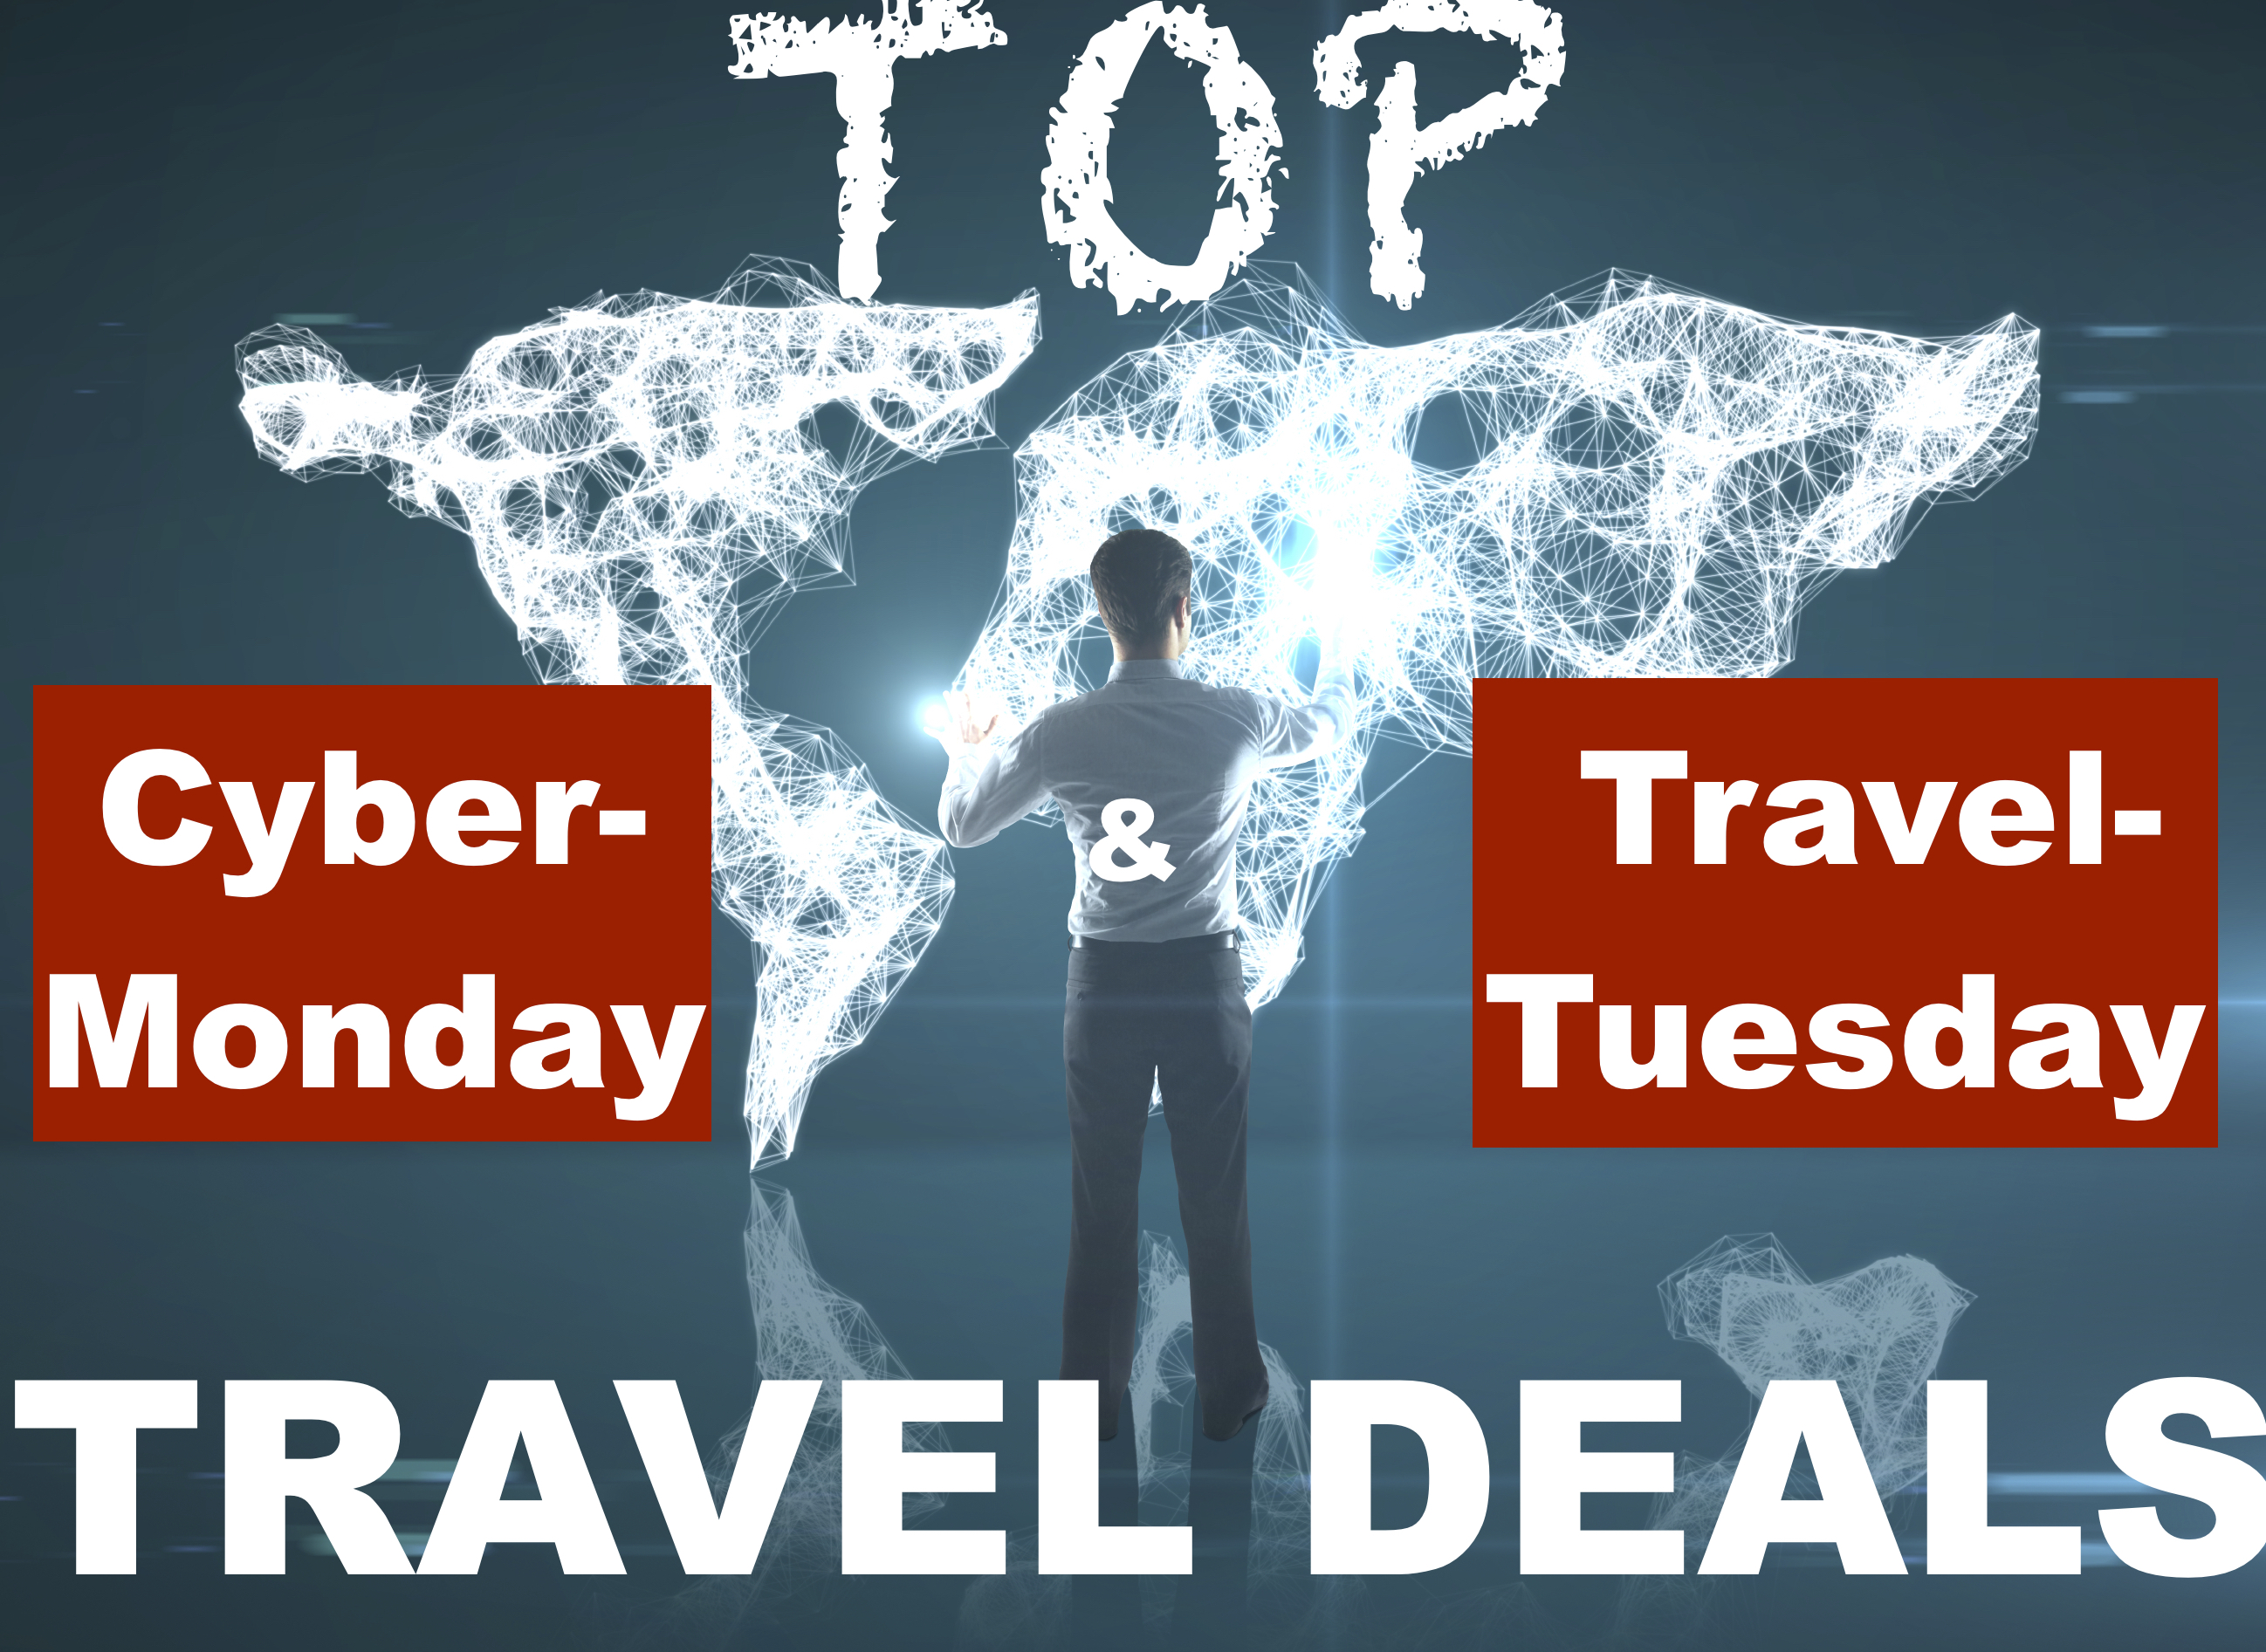 Top Cyber Monday Travel Tuesday Travel Deals Bttb